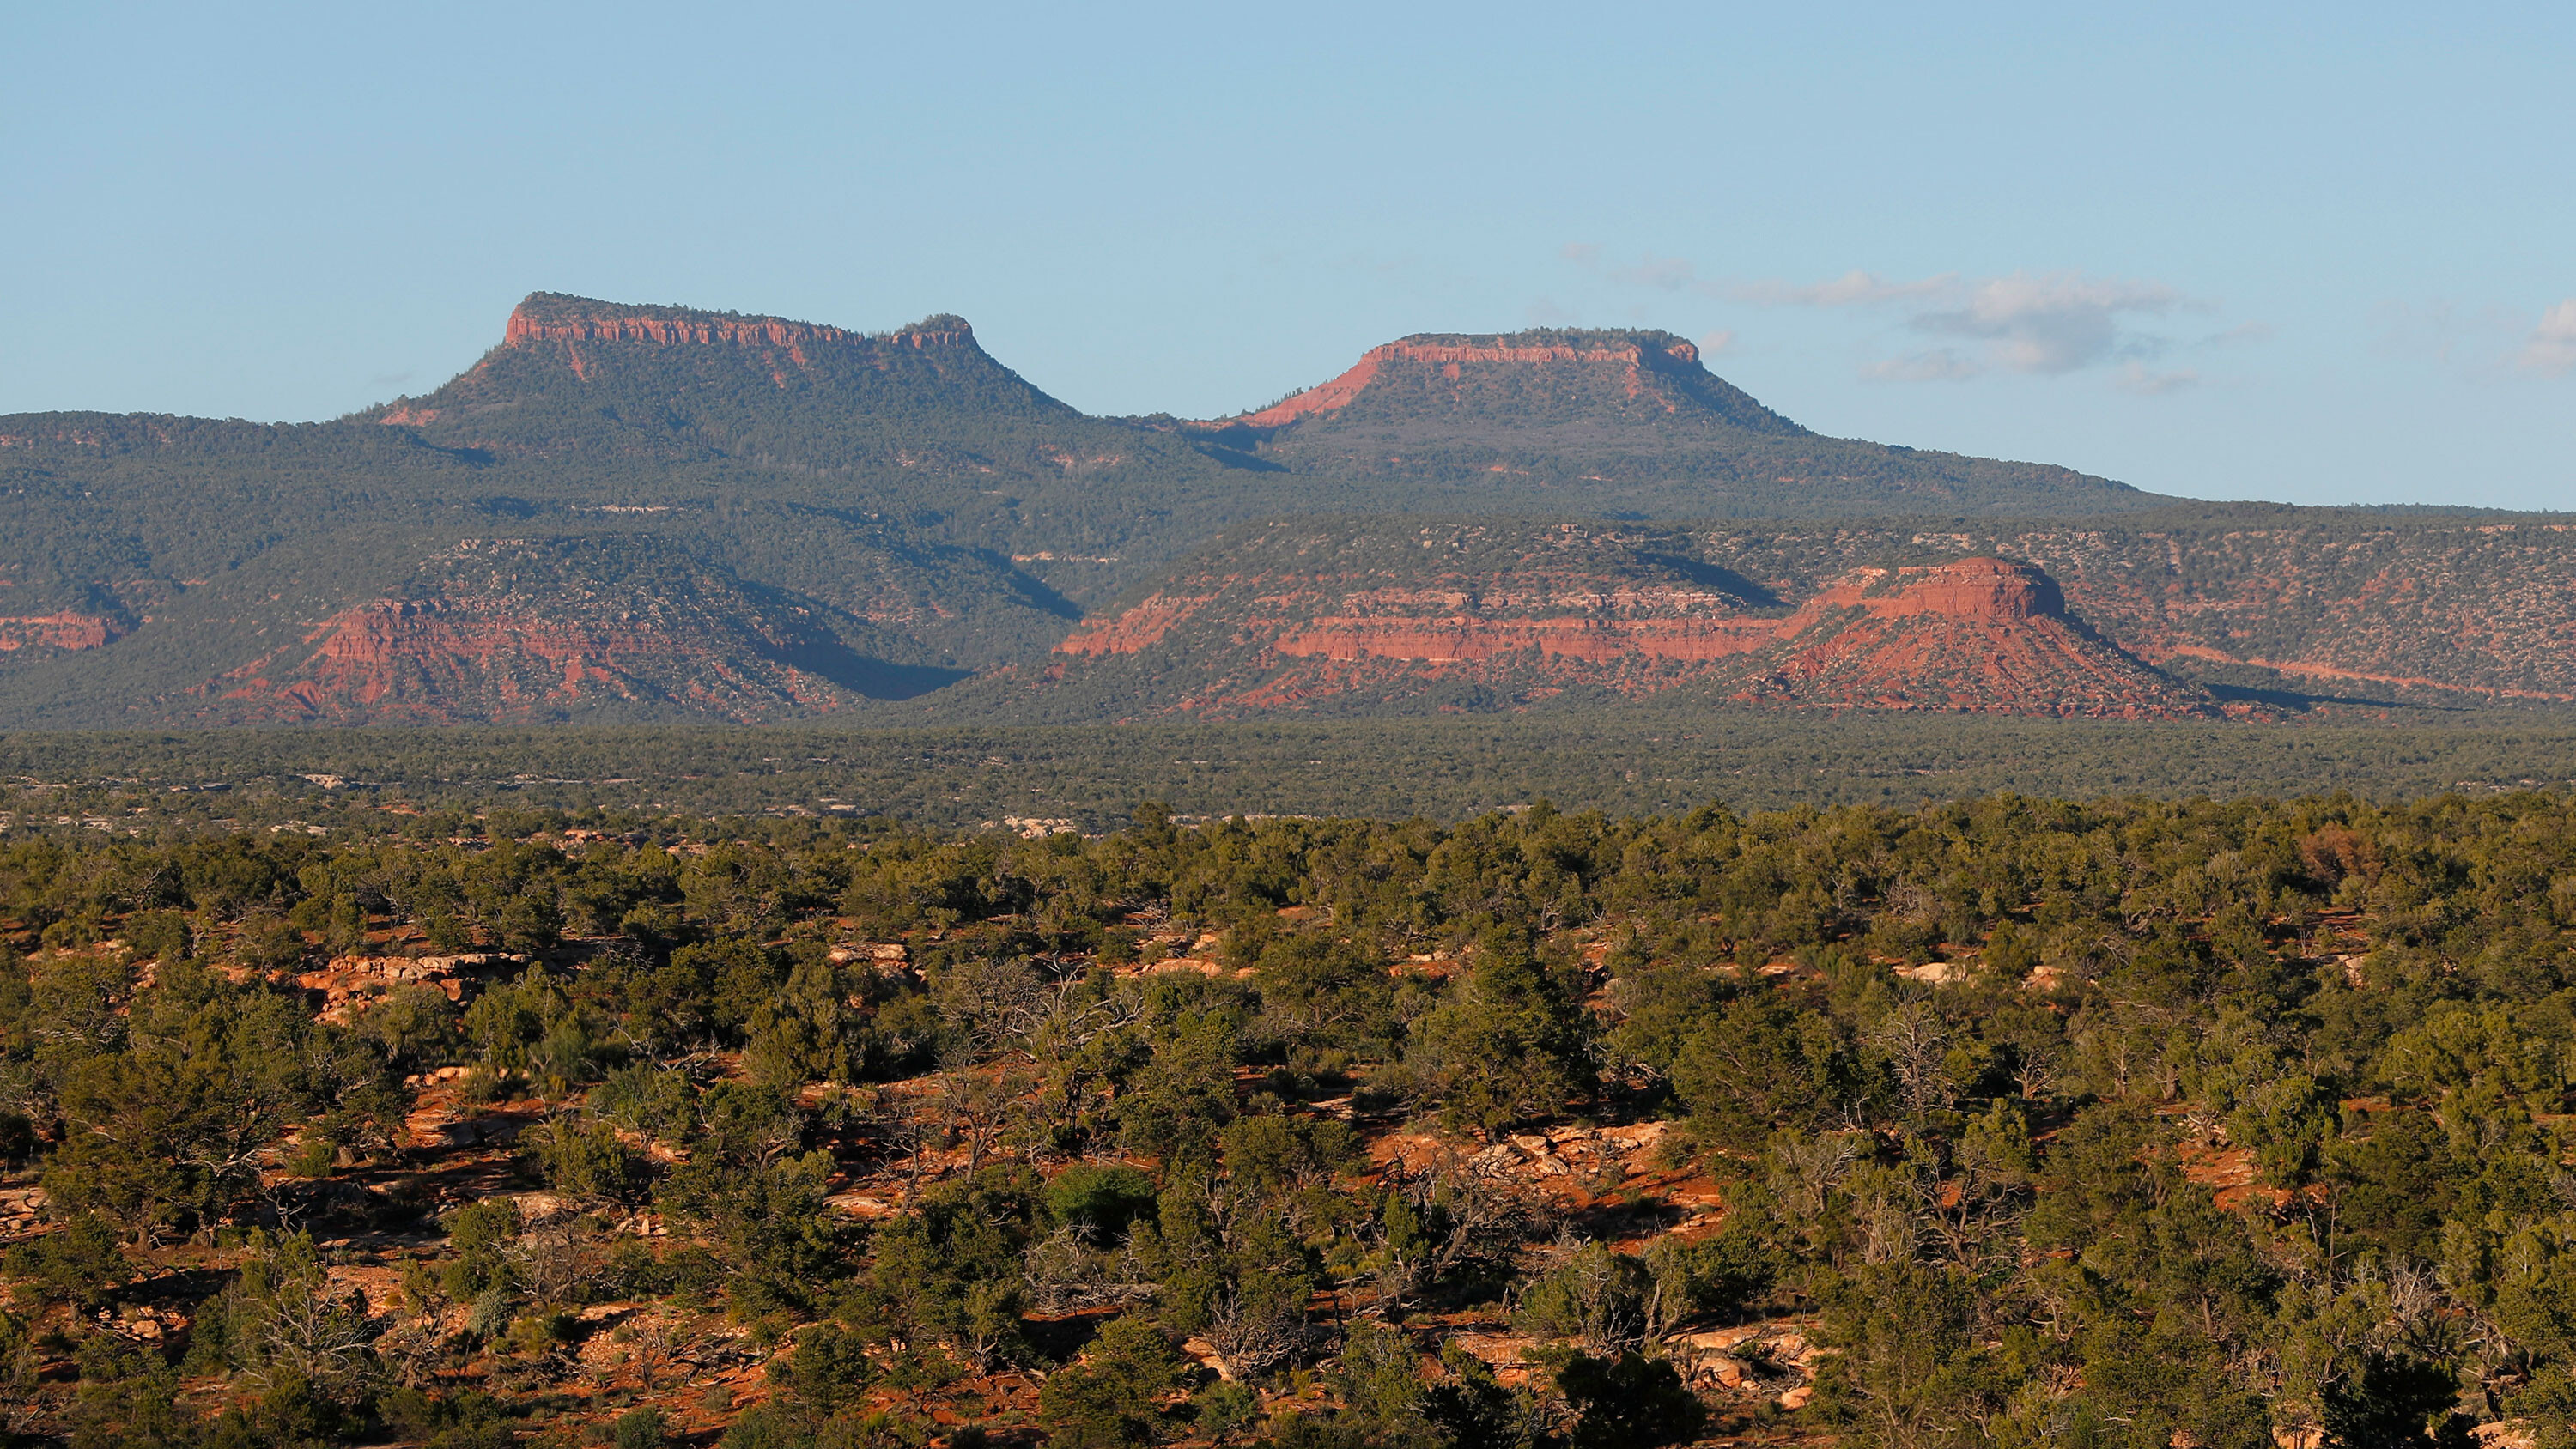 Biden will sign proclamations restoring protections for Bears Ears and Grand Staircase-Escalante national monuments